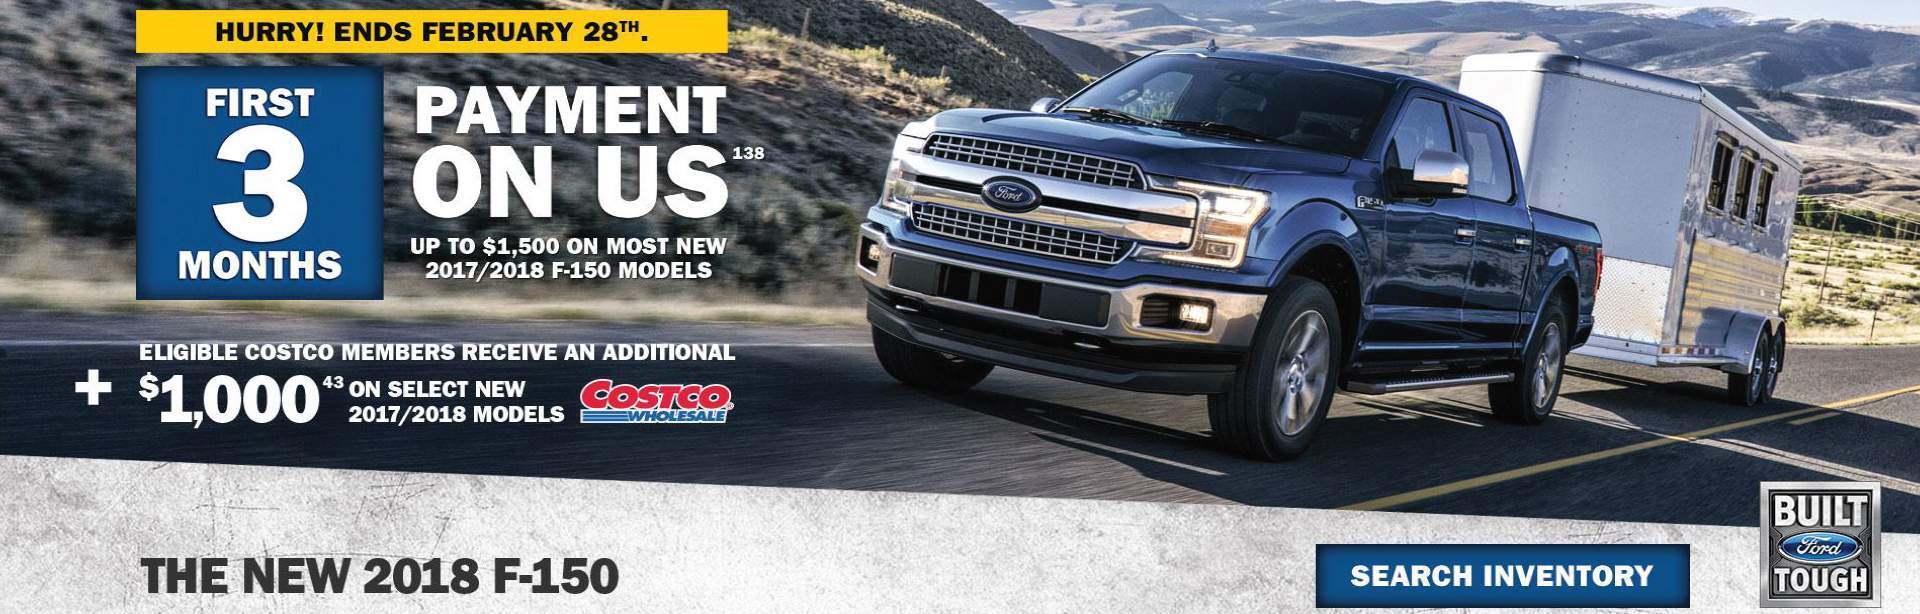 First 3 Months Payments on Us | F-150 | AM FORD